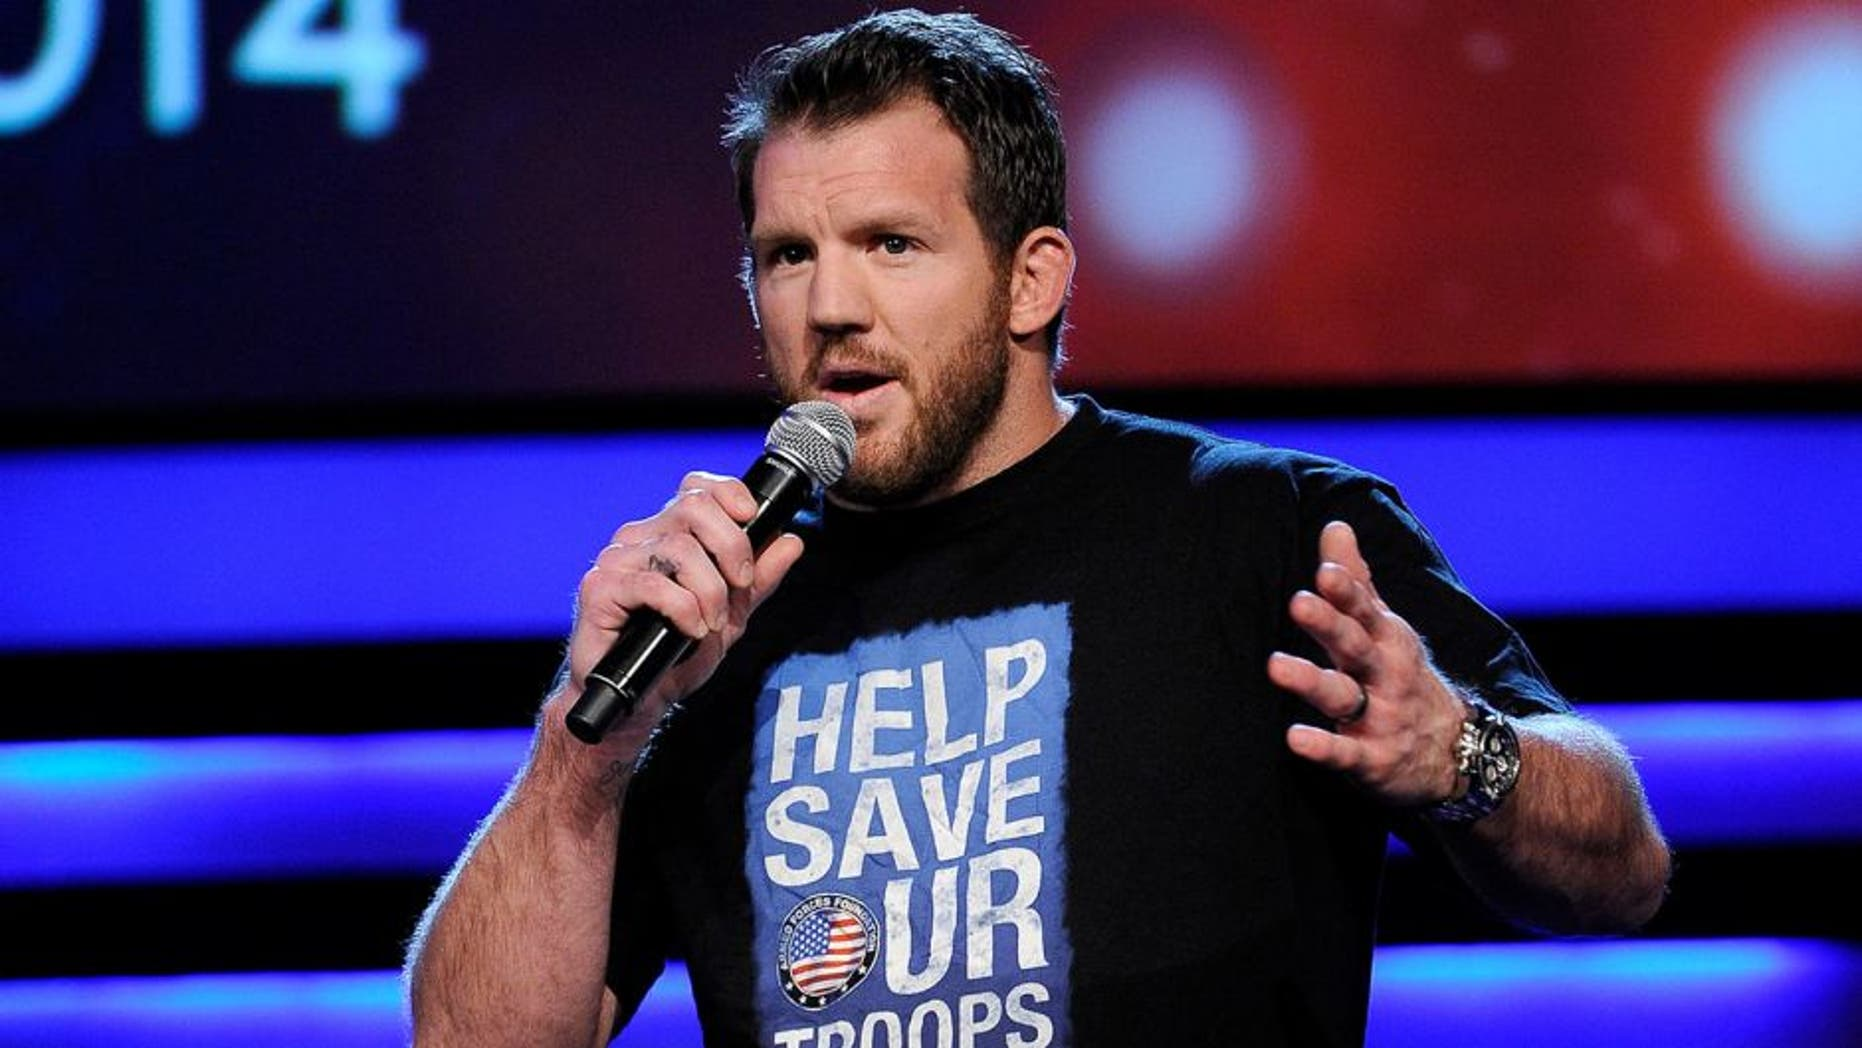 """LAS VEGAS, NV - FEBRUARY 19: Mixed martial artist Ryan Bader speaks during the """"Ron White's Comedy Salute to the Troops 2014"""" at The Mirage Hotel & Casino on February 19, 2014 in Las Vegas, Nevada. (Photo by David Becker/WireImage)"""